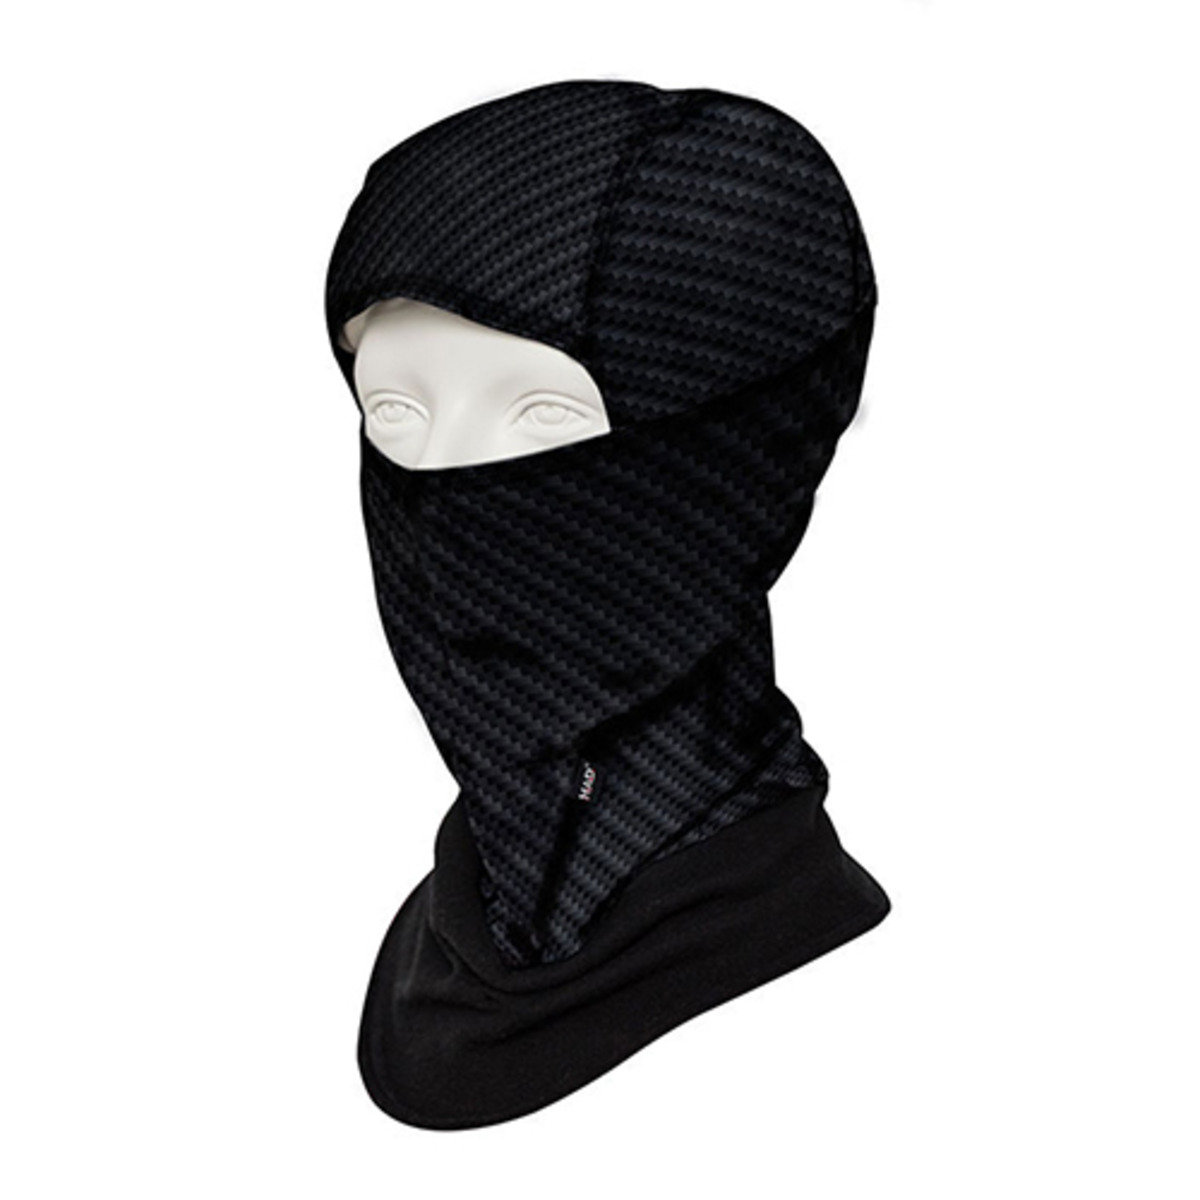 Hadmask-Carbon-HA610-0244